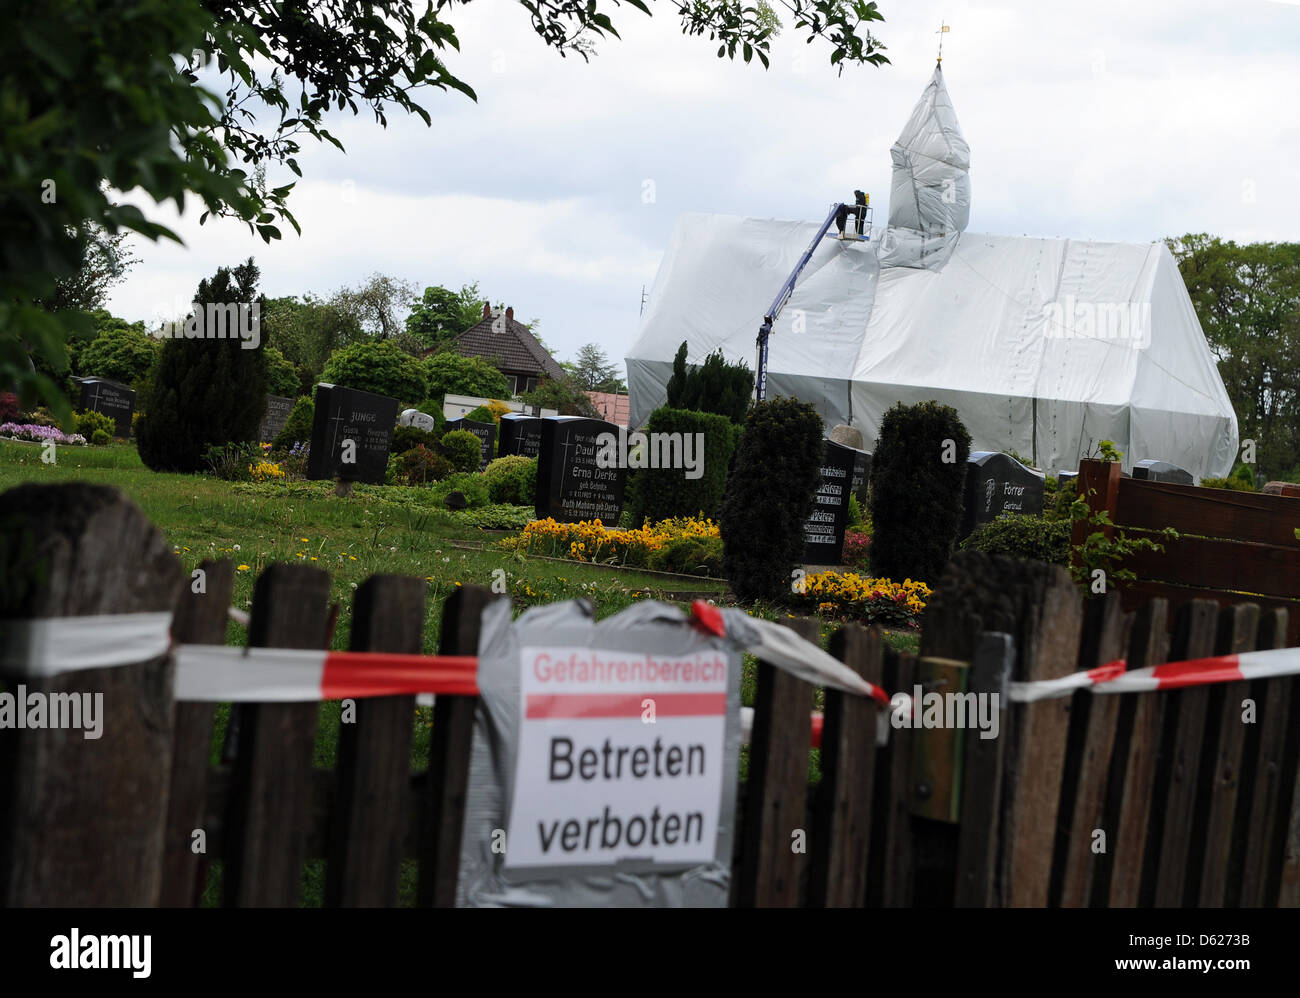 The Saint Nikolaus Chapel is covered with a white foil in Wittorf, Germany, 12 May 2012. The chapel was veiled due - Stock Image